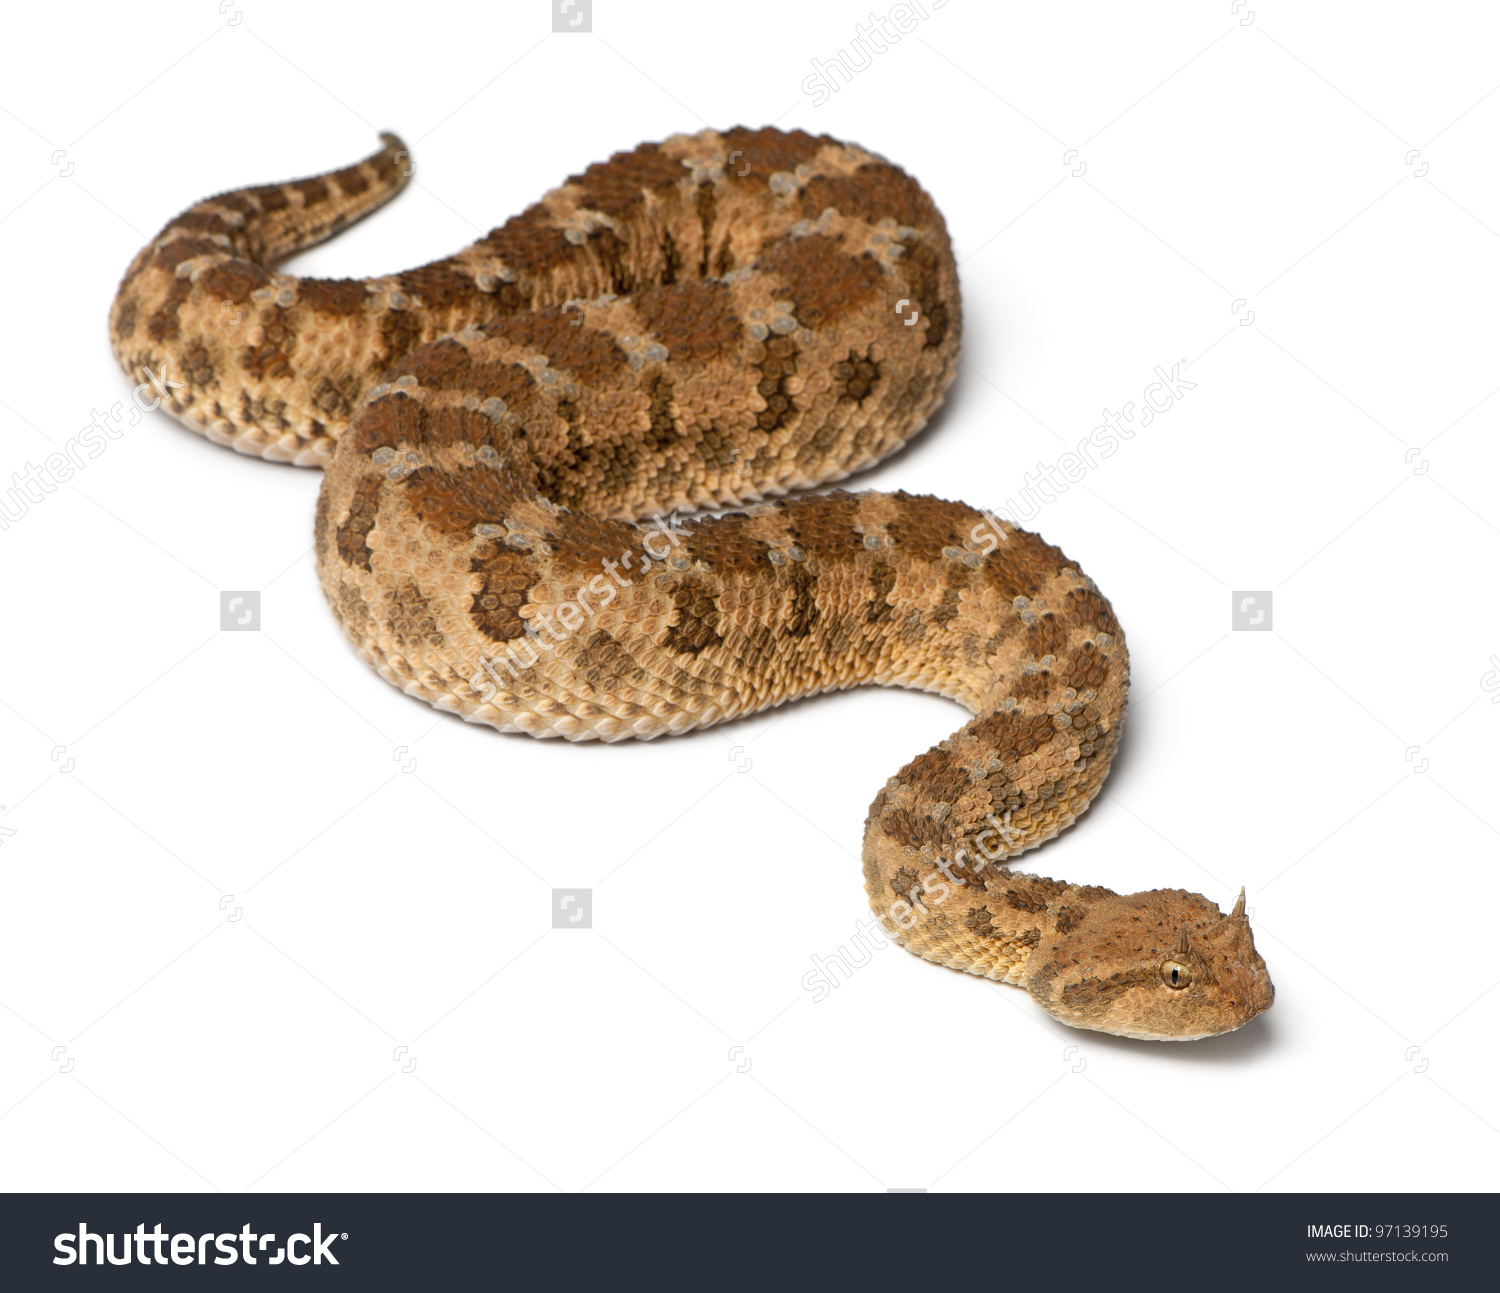 Saharan Horned Viper Cerastes Cerastes Poisonous Stock Photo.